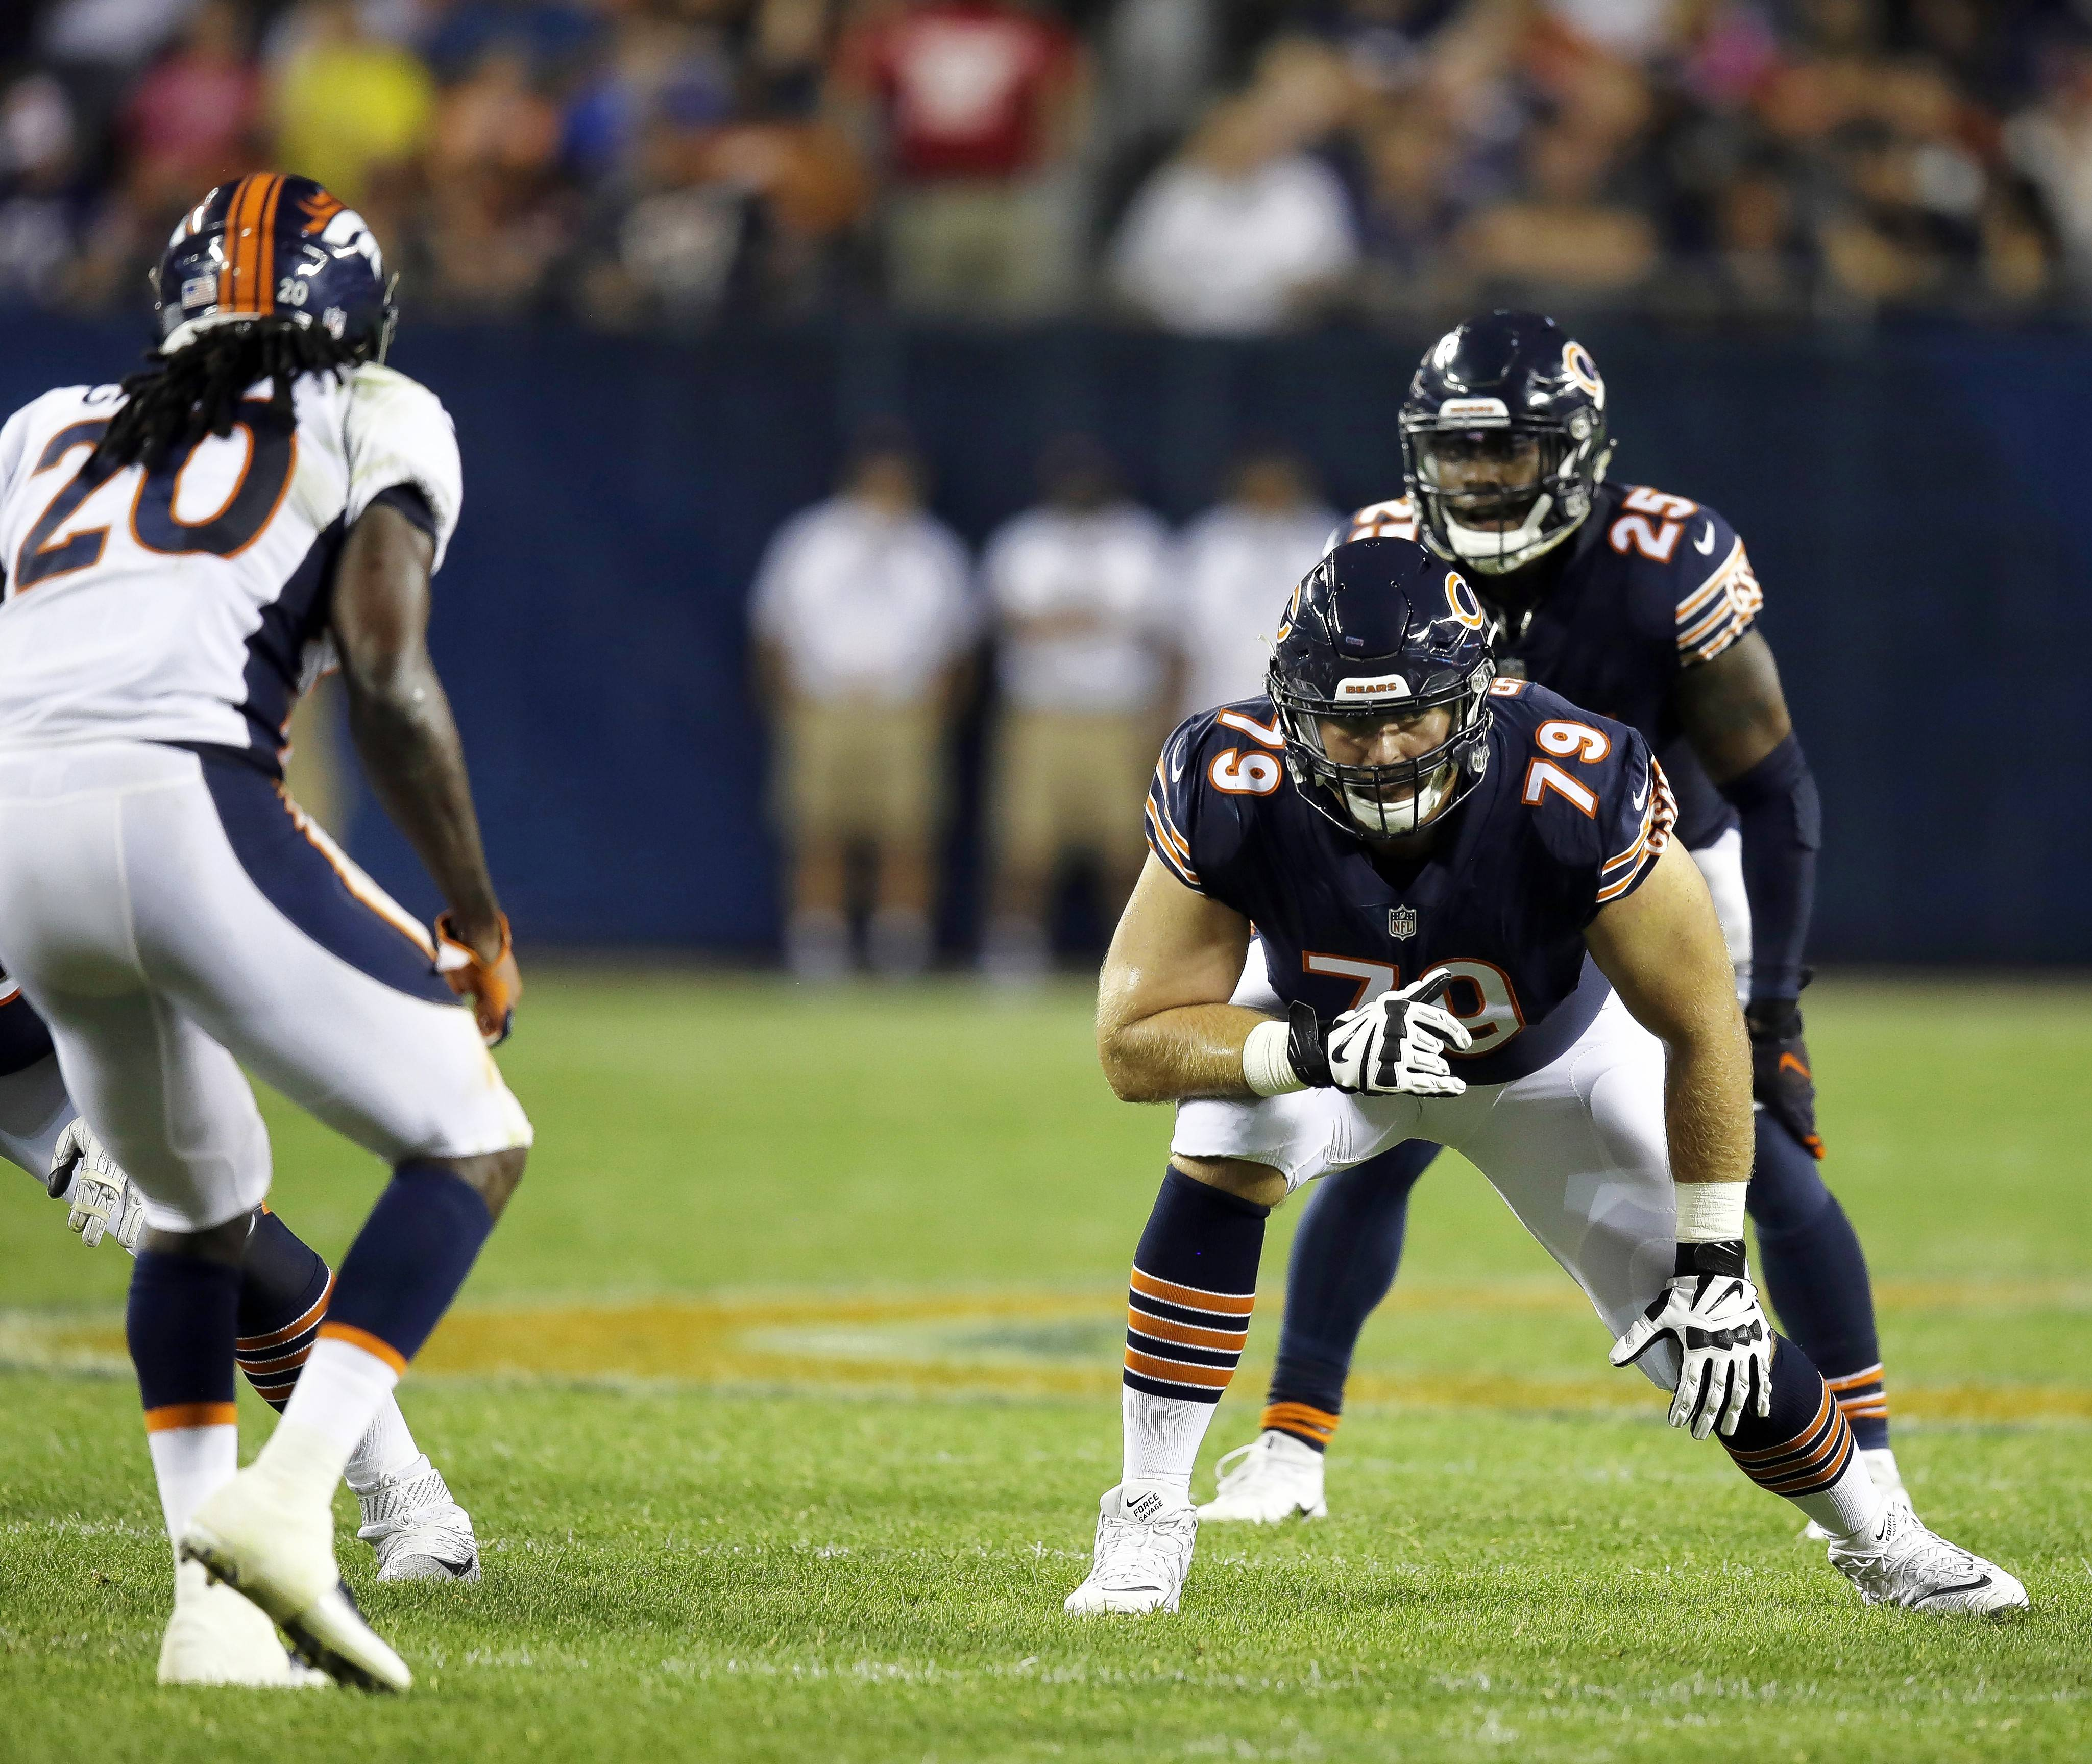 Chicago Bears agree on 2-year deal with backup OL Sowell